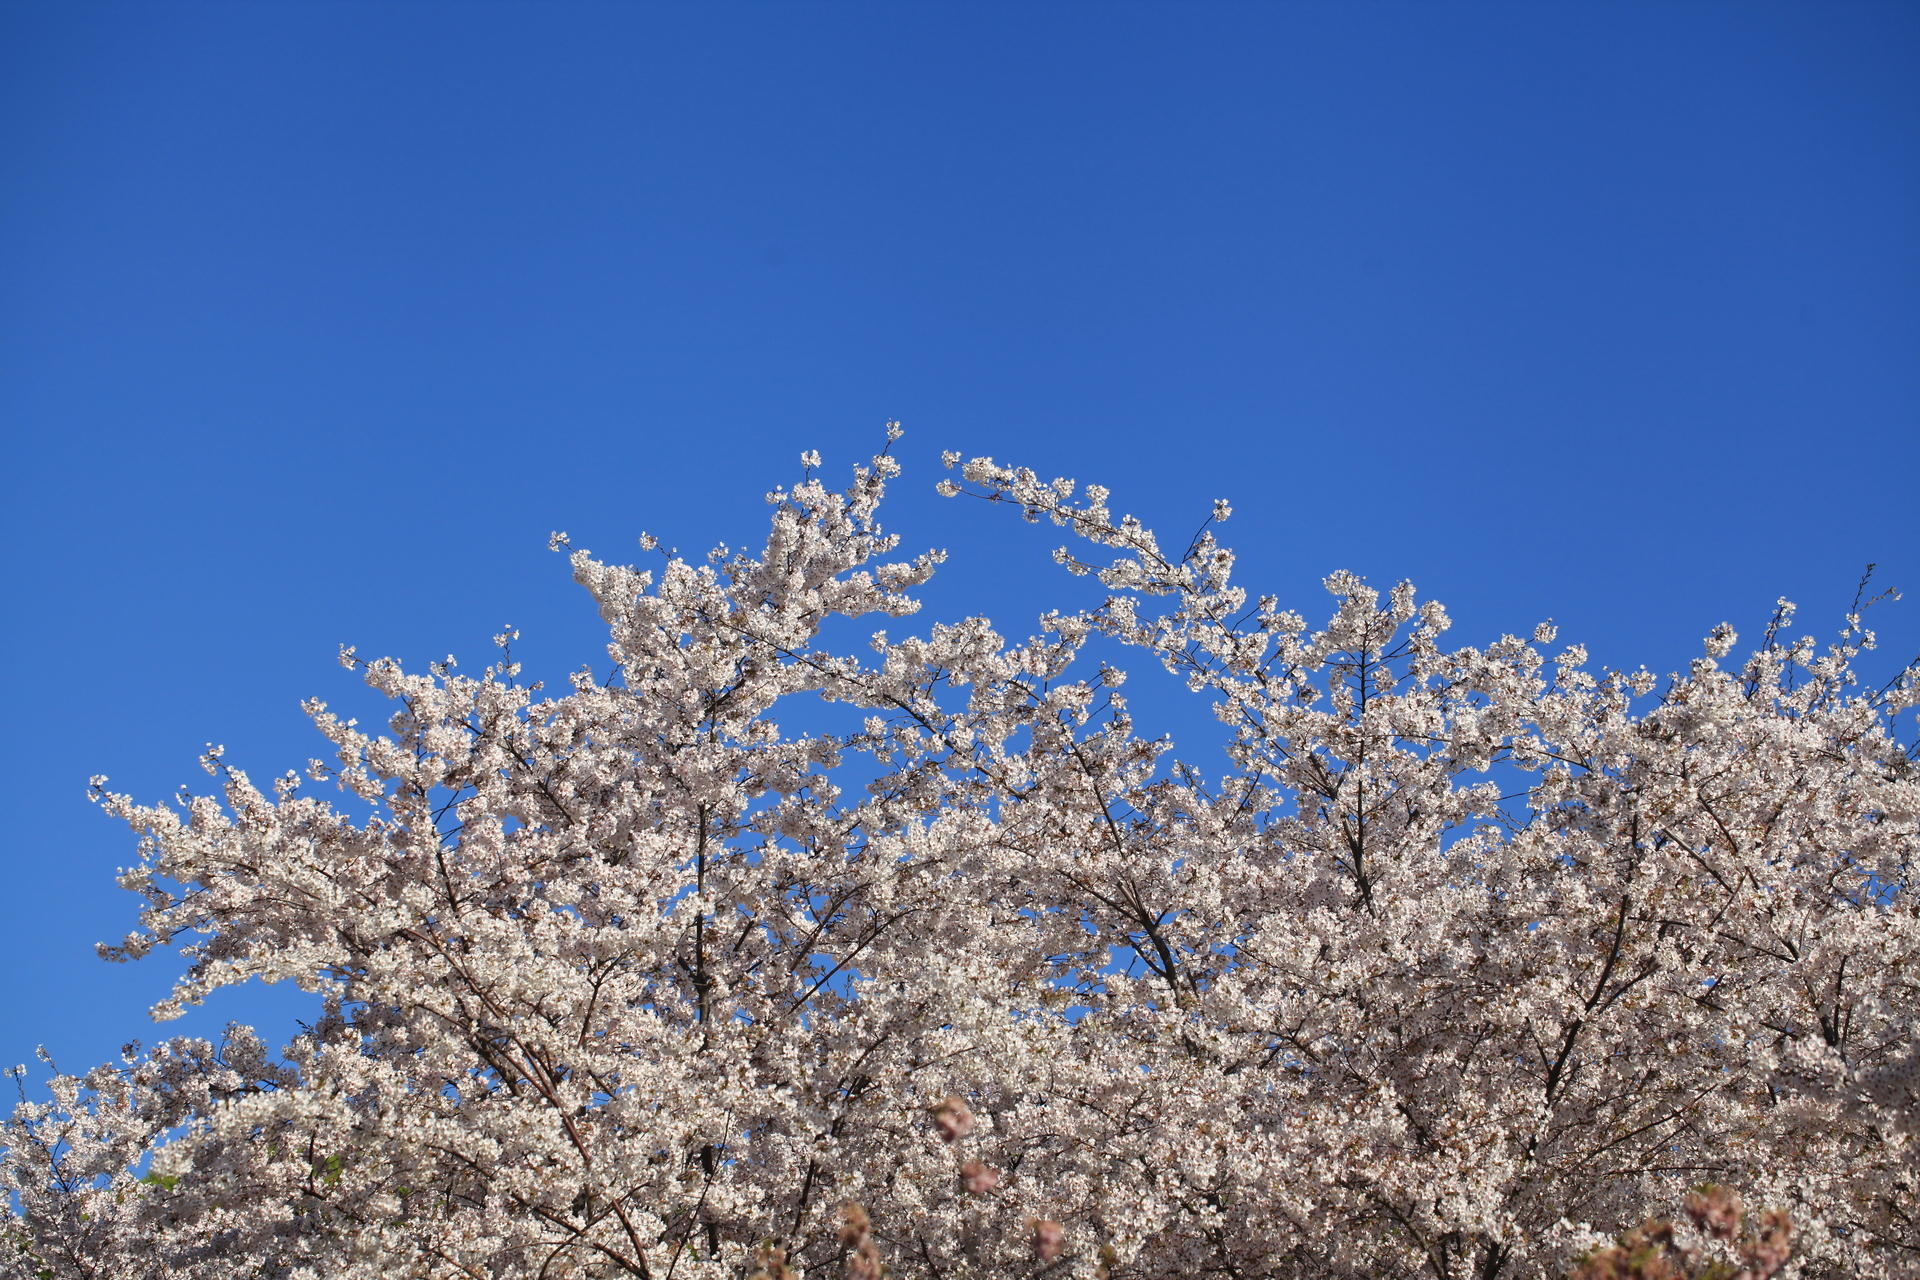 The cherry blossom | jerry32, blue sky, bright, fair weather